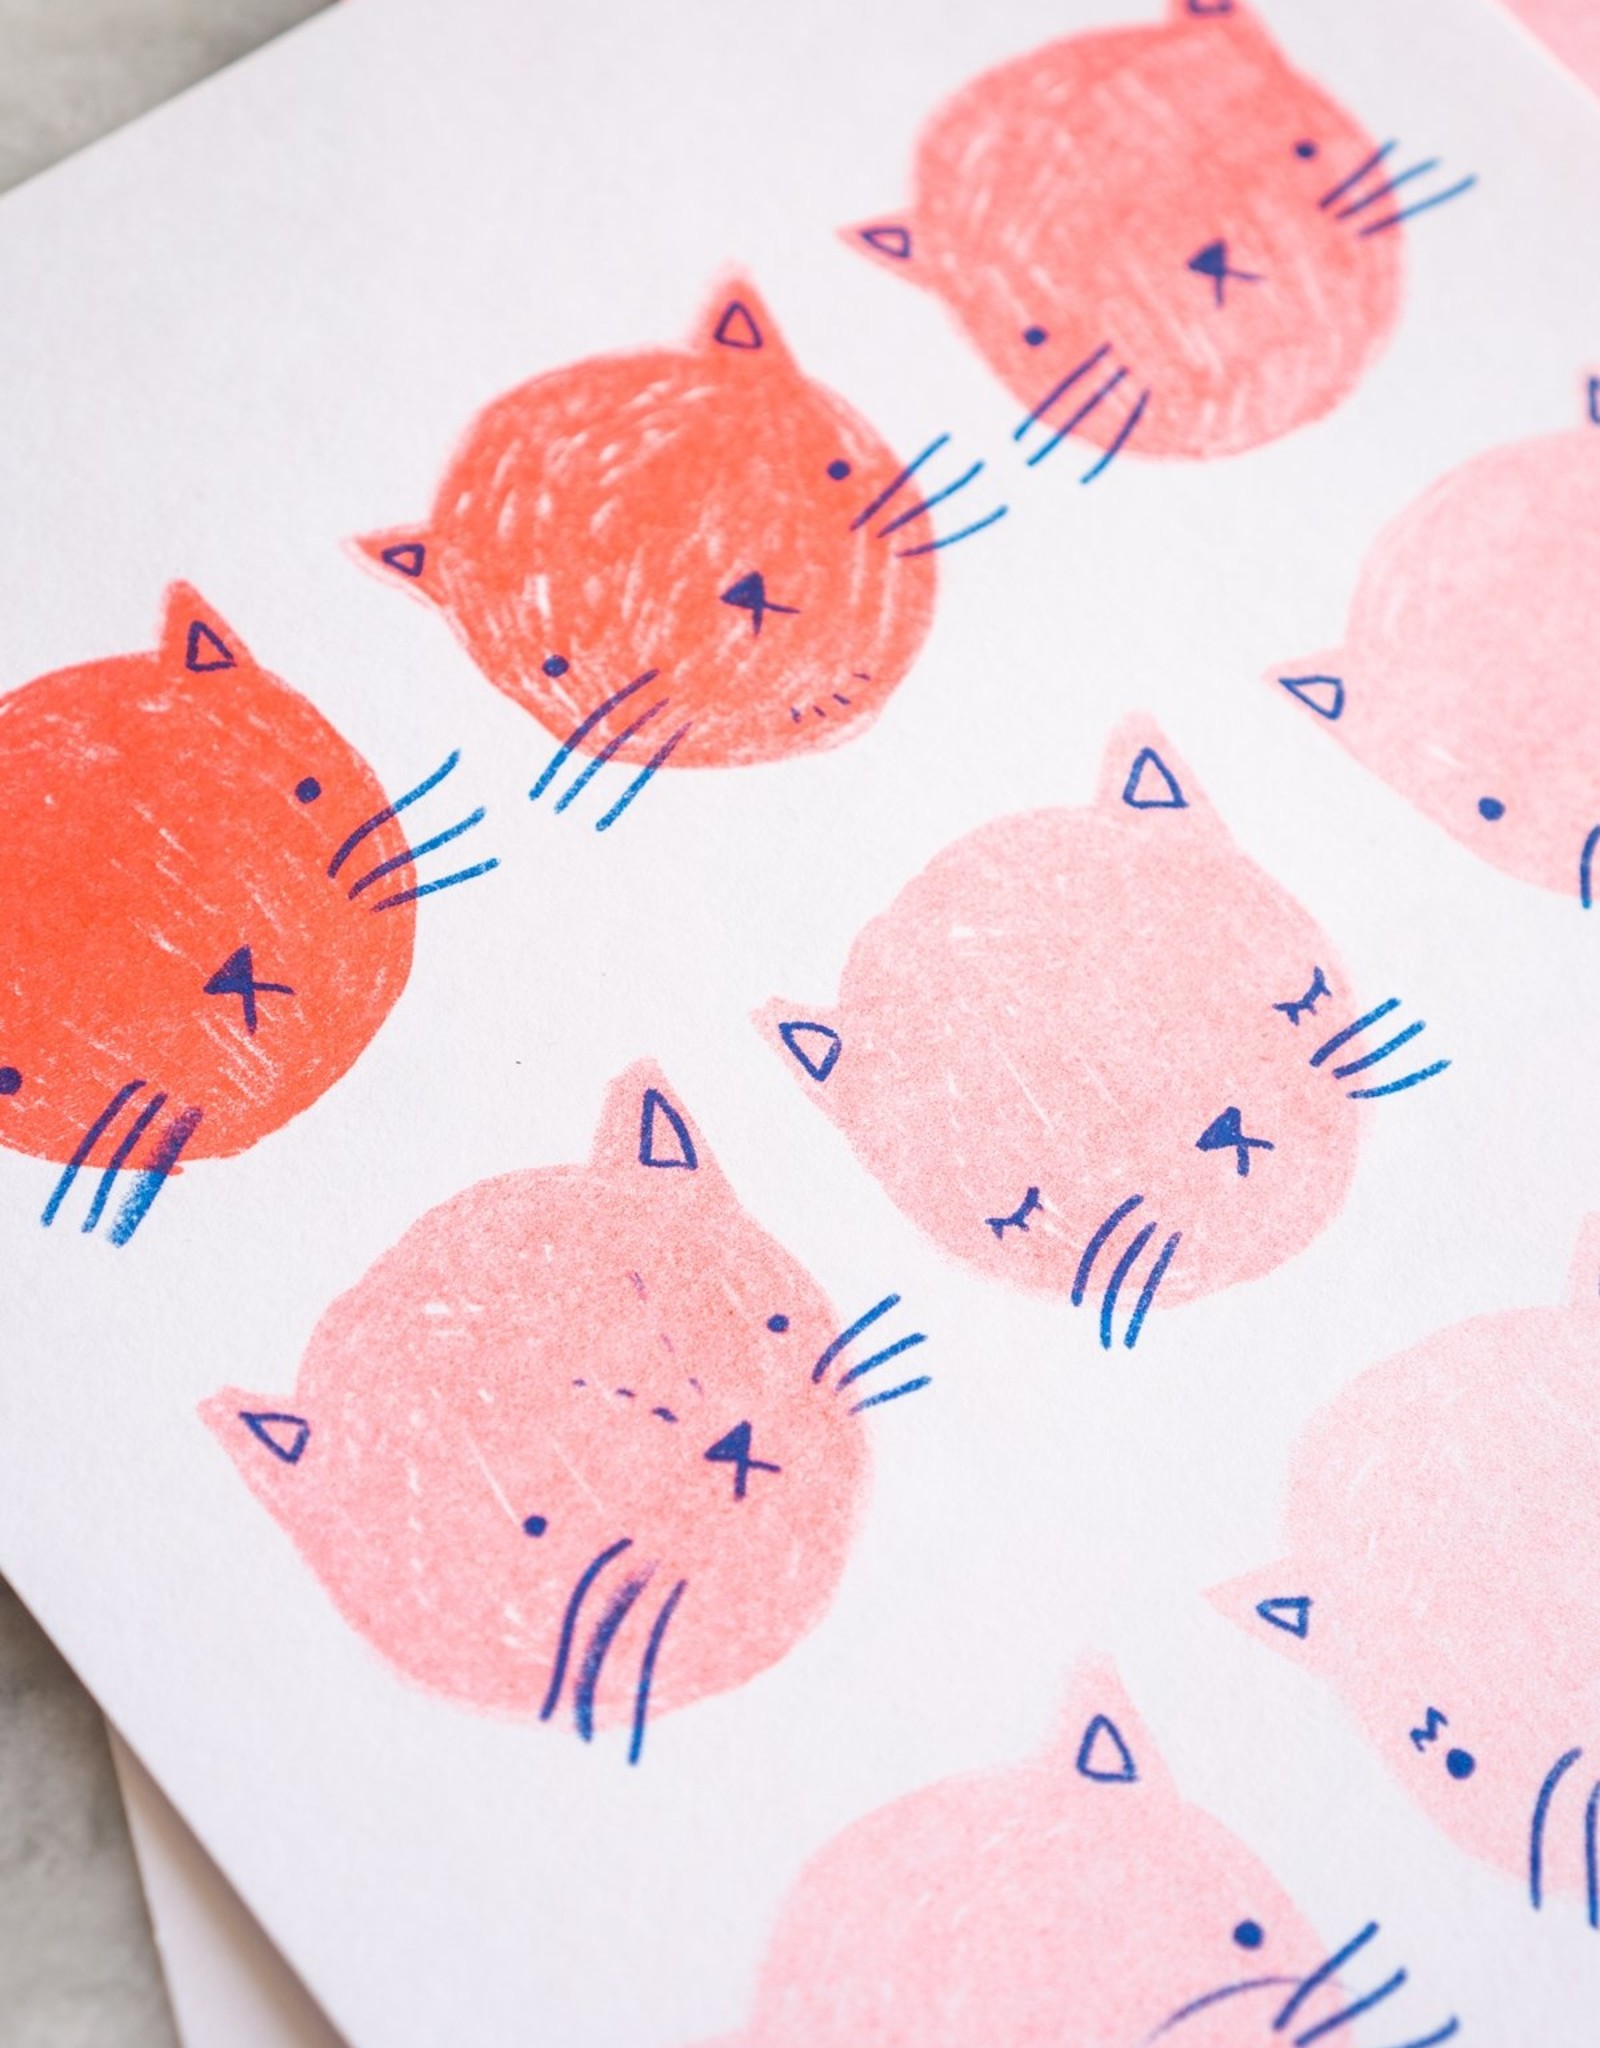 Stay Home Club Stay Home Club Fading cat Riso print - Poster